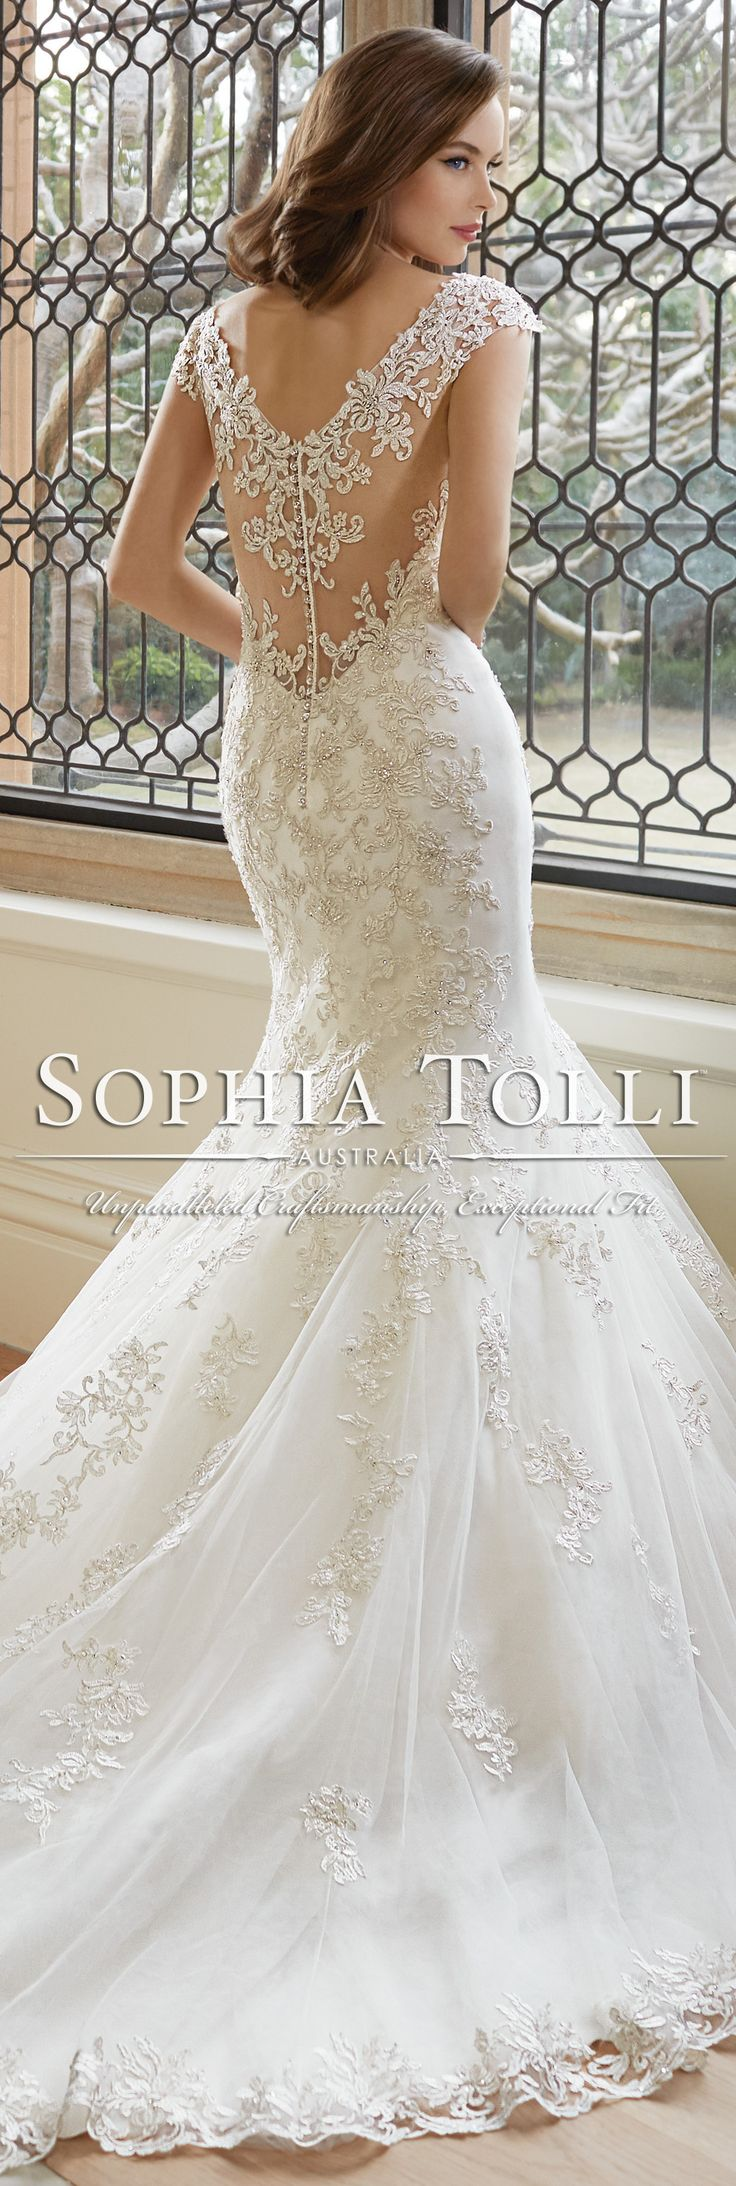 The Sophia Tolli Spring 2016 Wedding Dress Collection - Style No. Y11646 - Rana #laceweddingdress